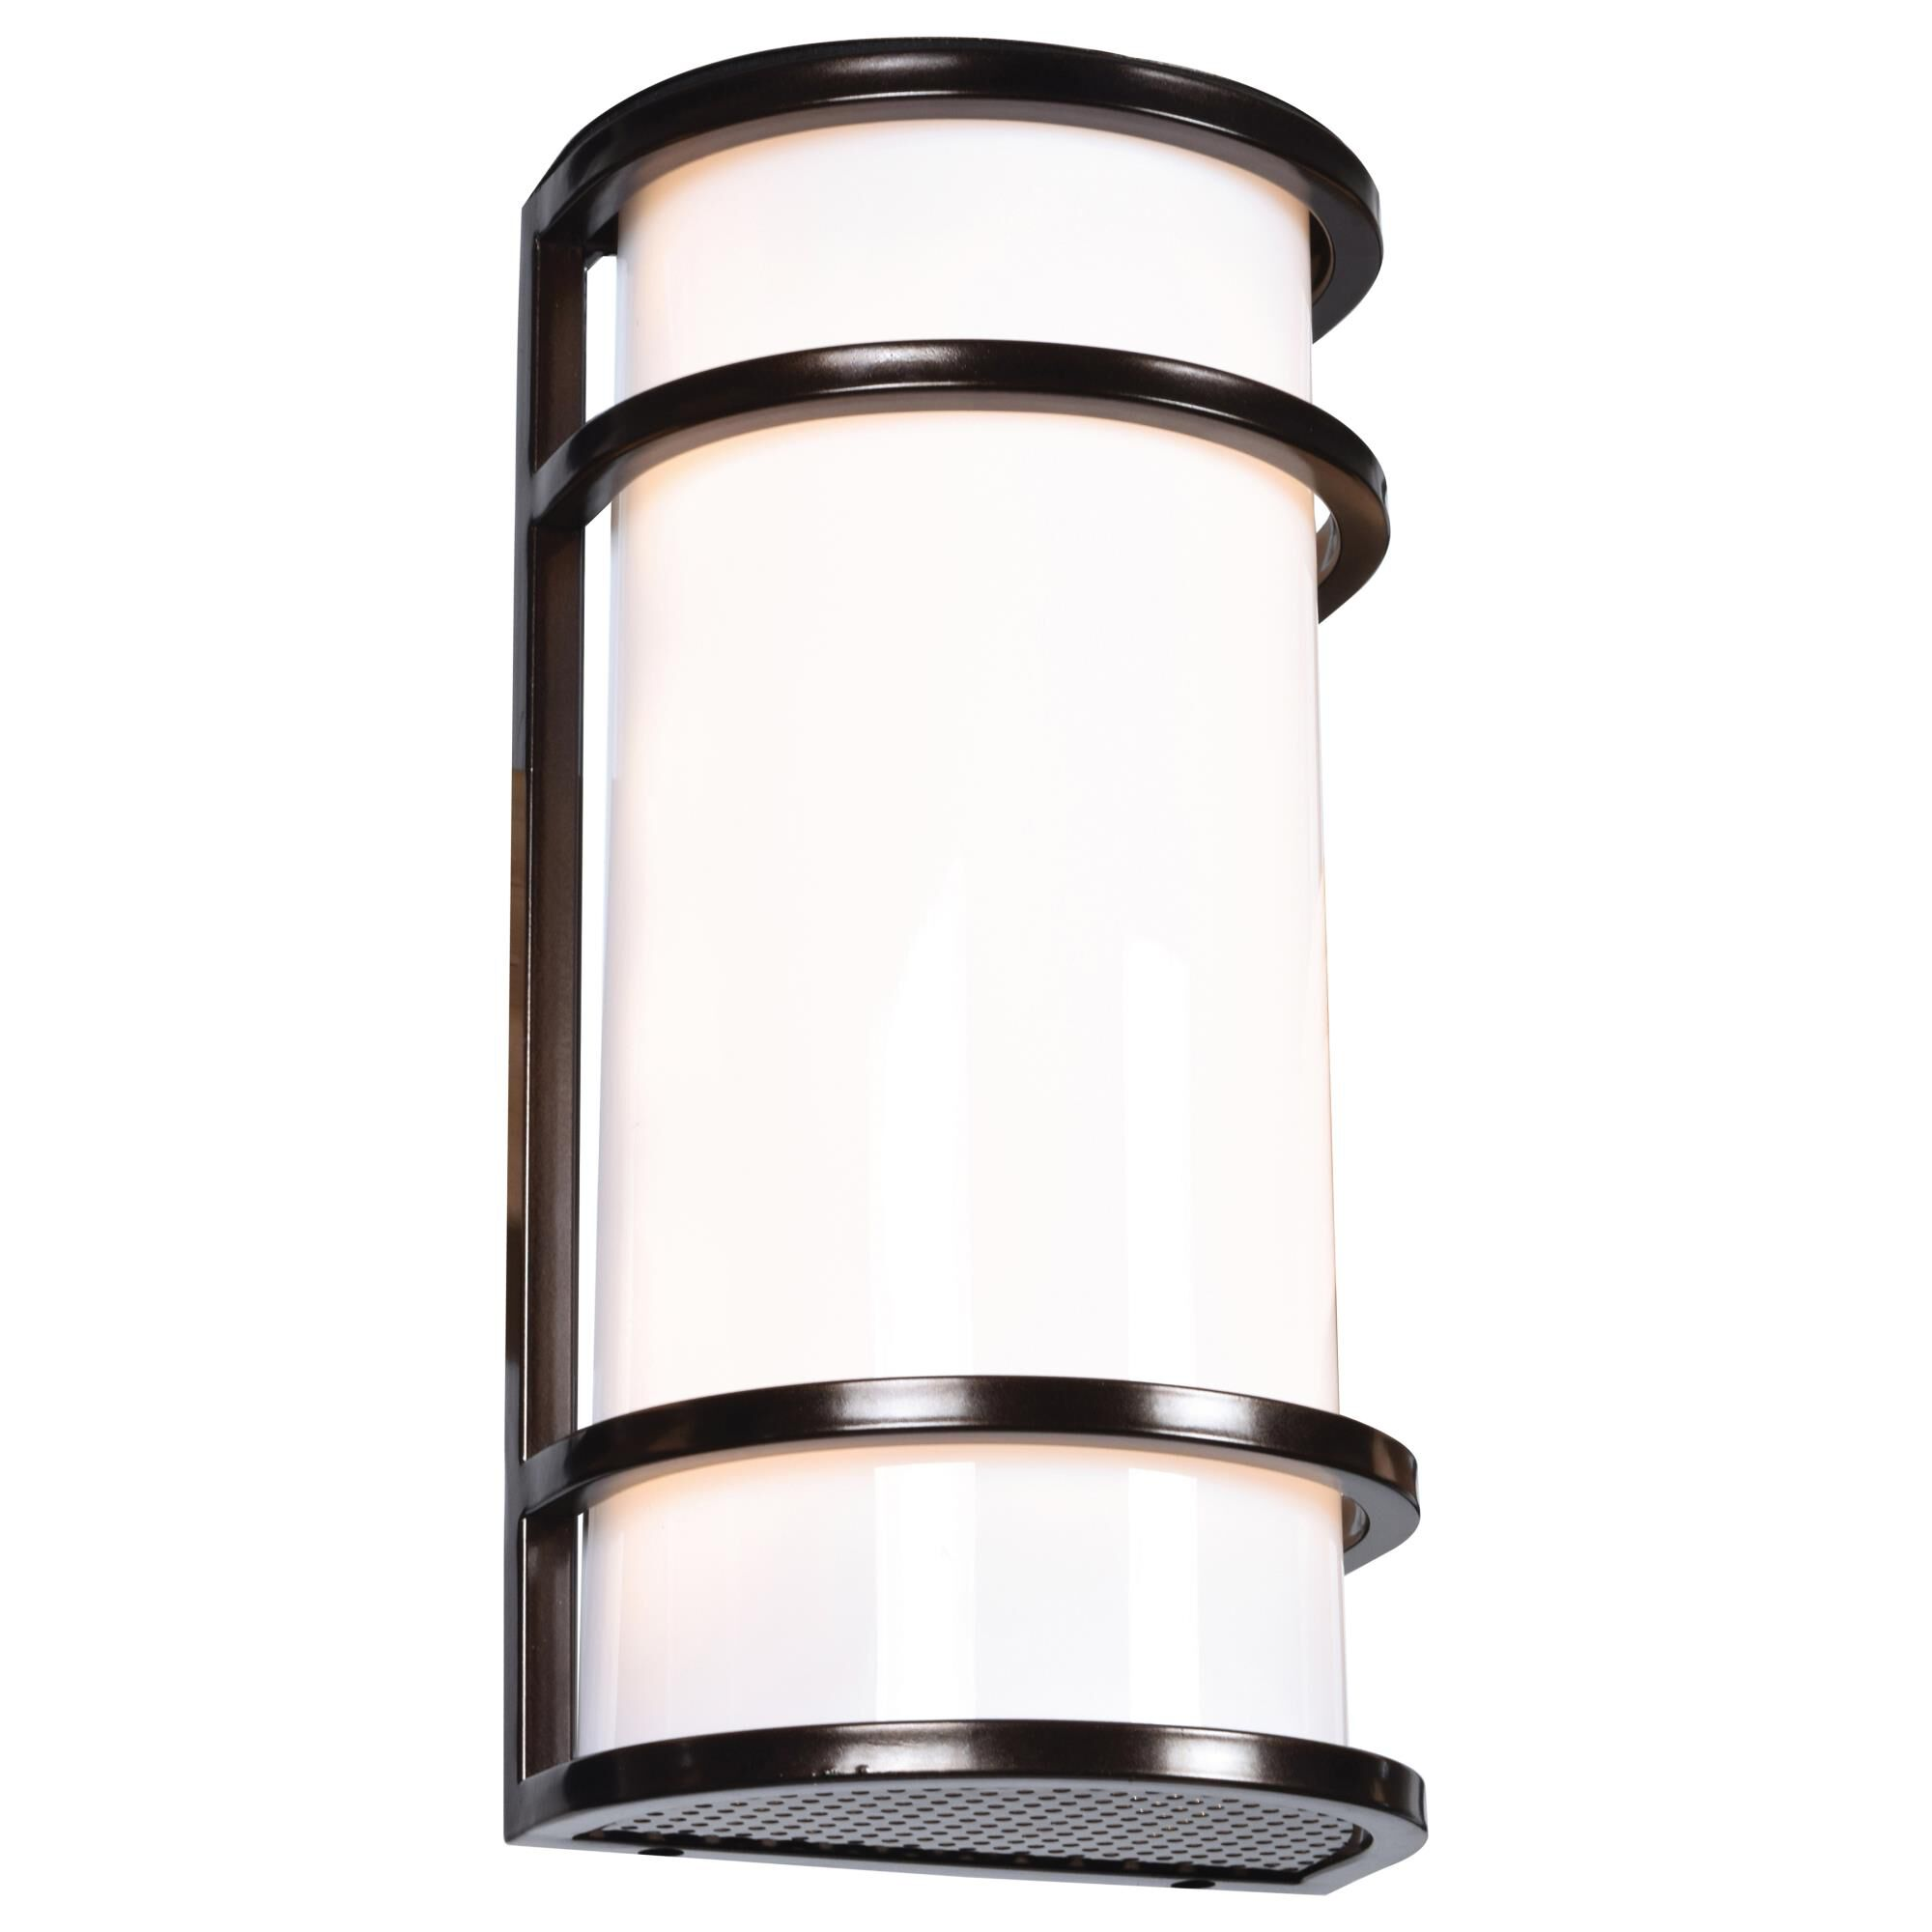 Access Lighting Cove 12 Inch Tall 1 Light LED Outdoor Wall Light Cove 20105LEDMG BRZACR Modern Contemporary